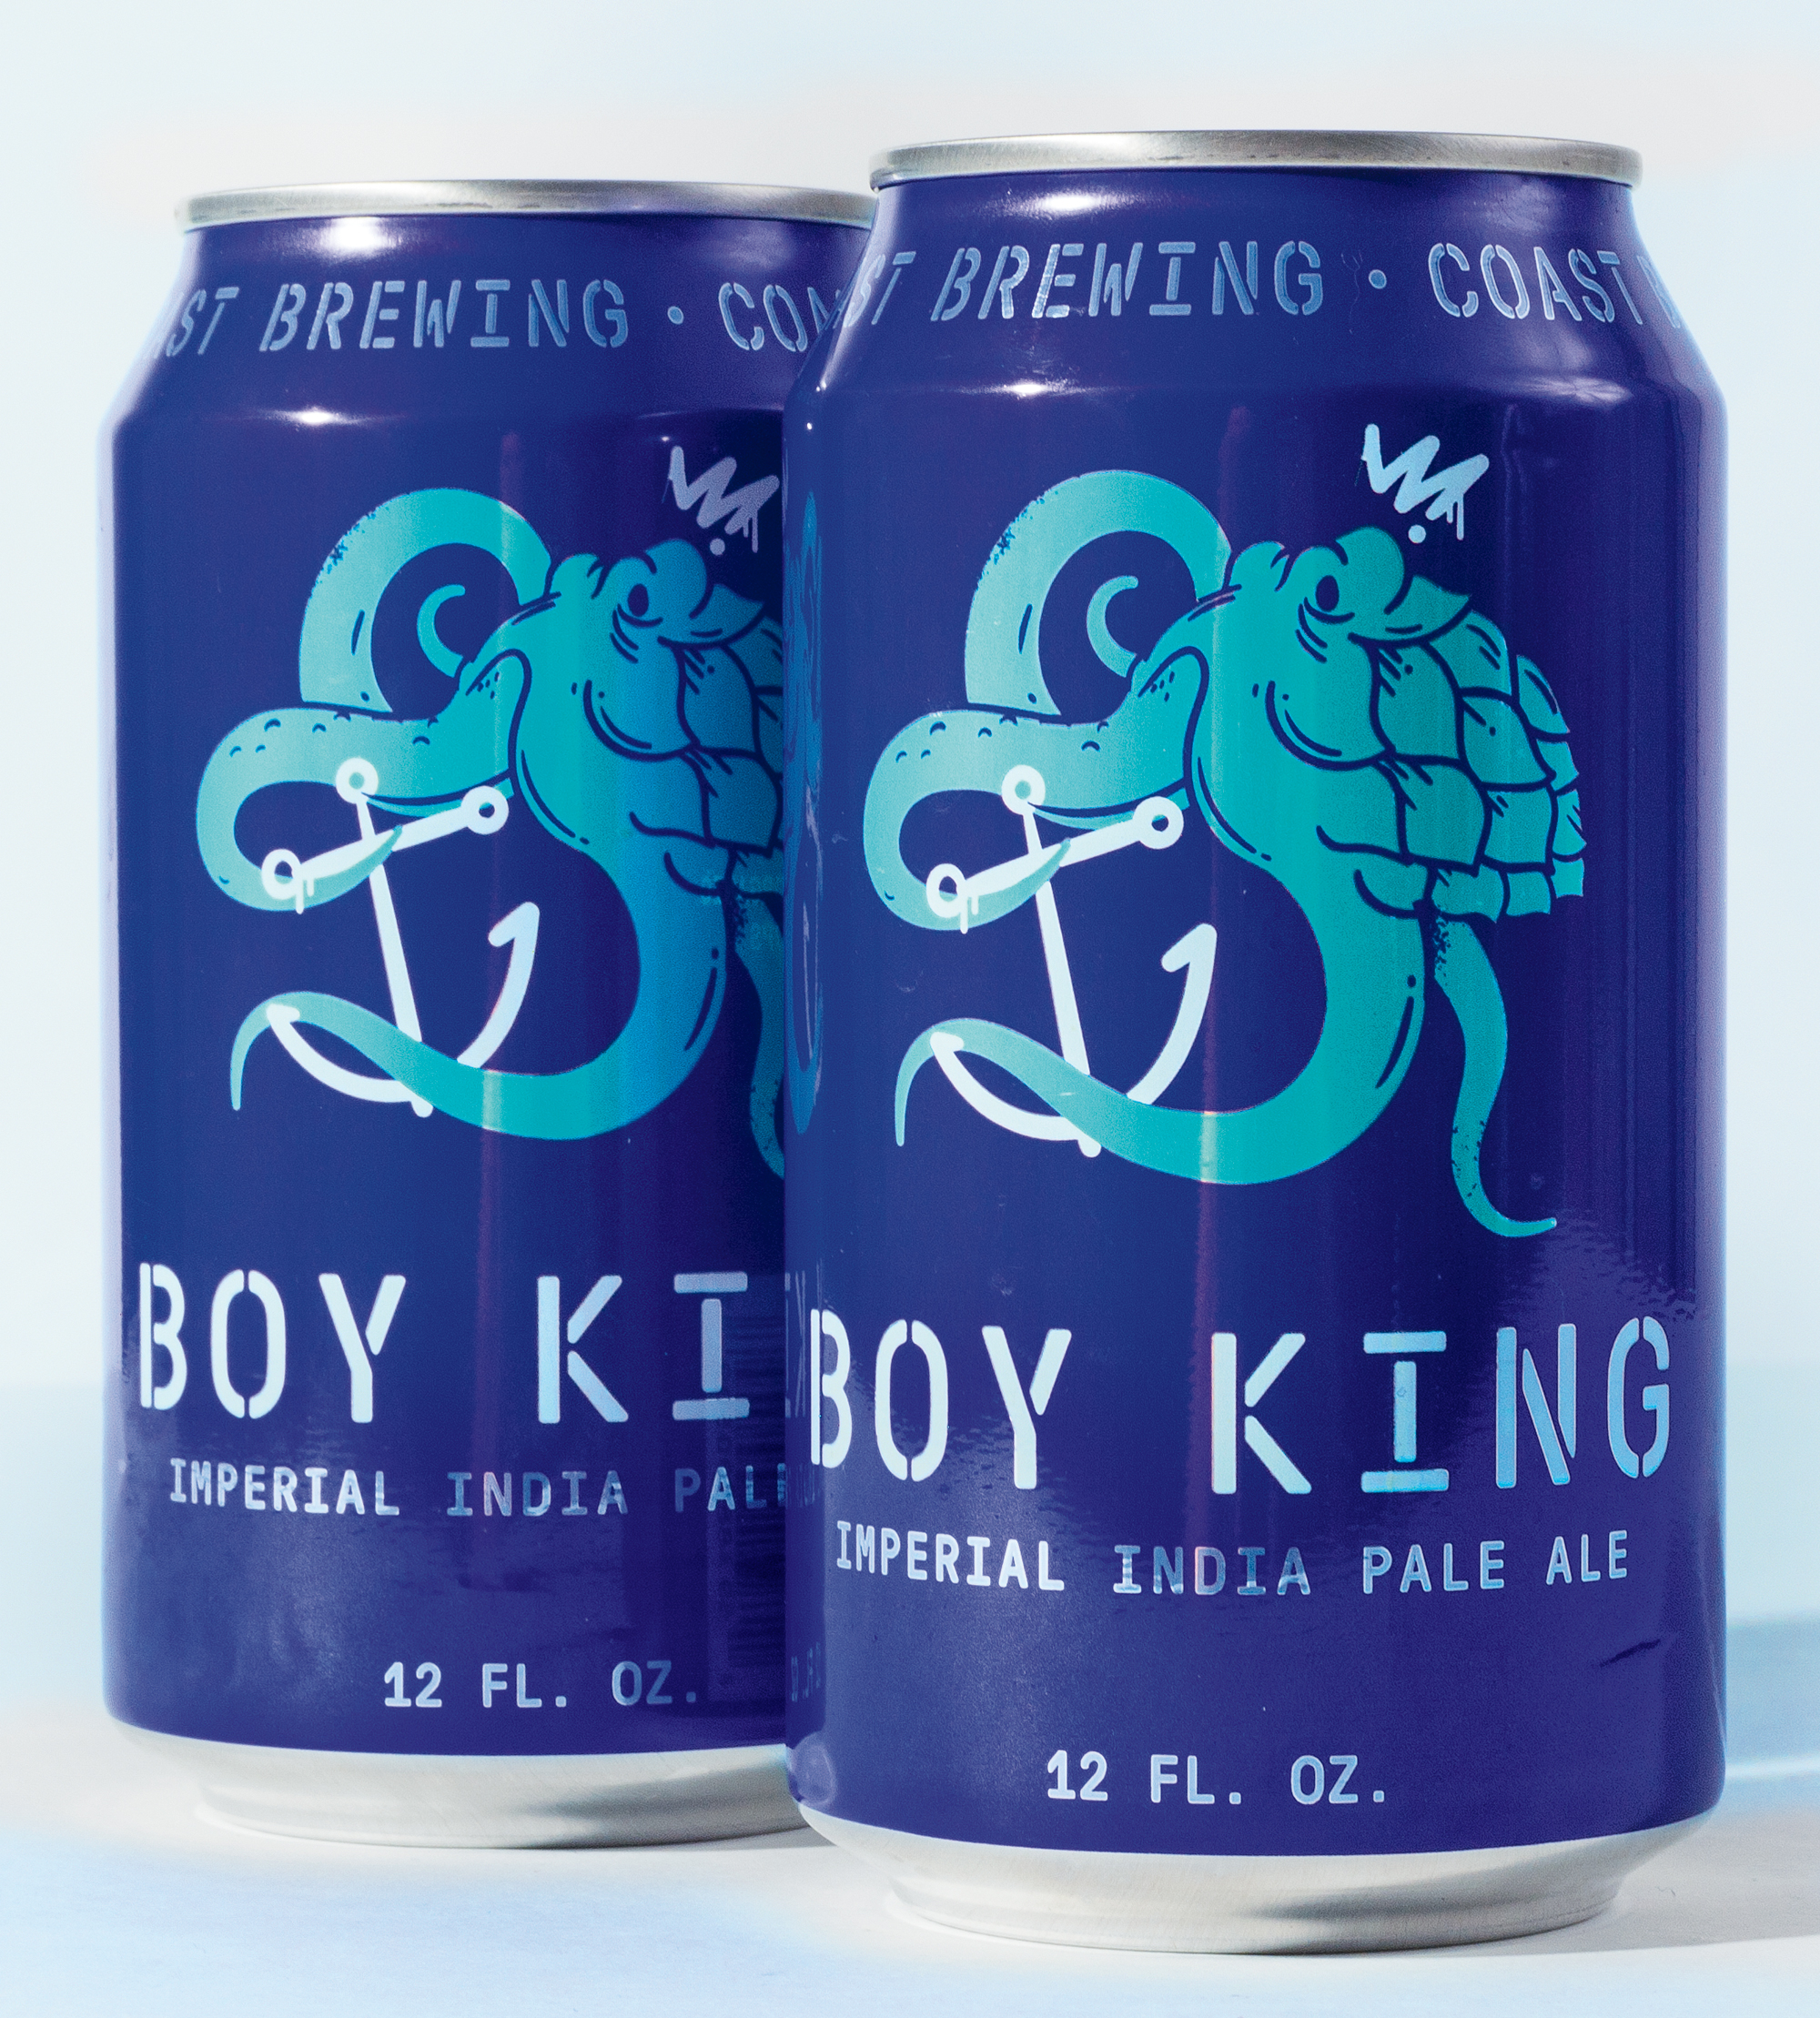 Brewing Co.'s Boy King Imperial IPA